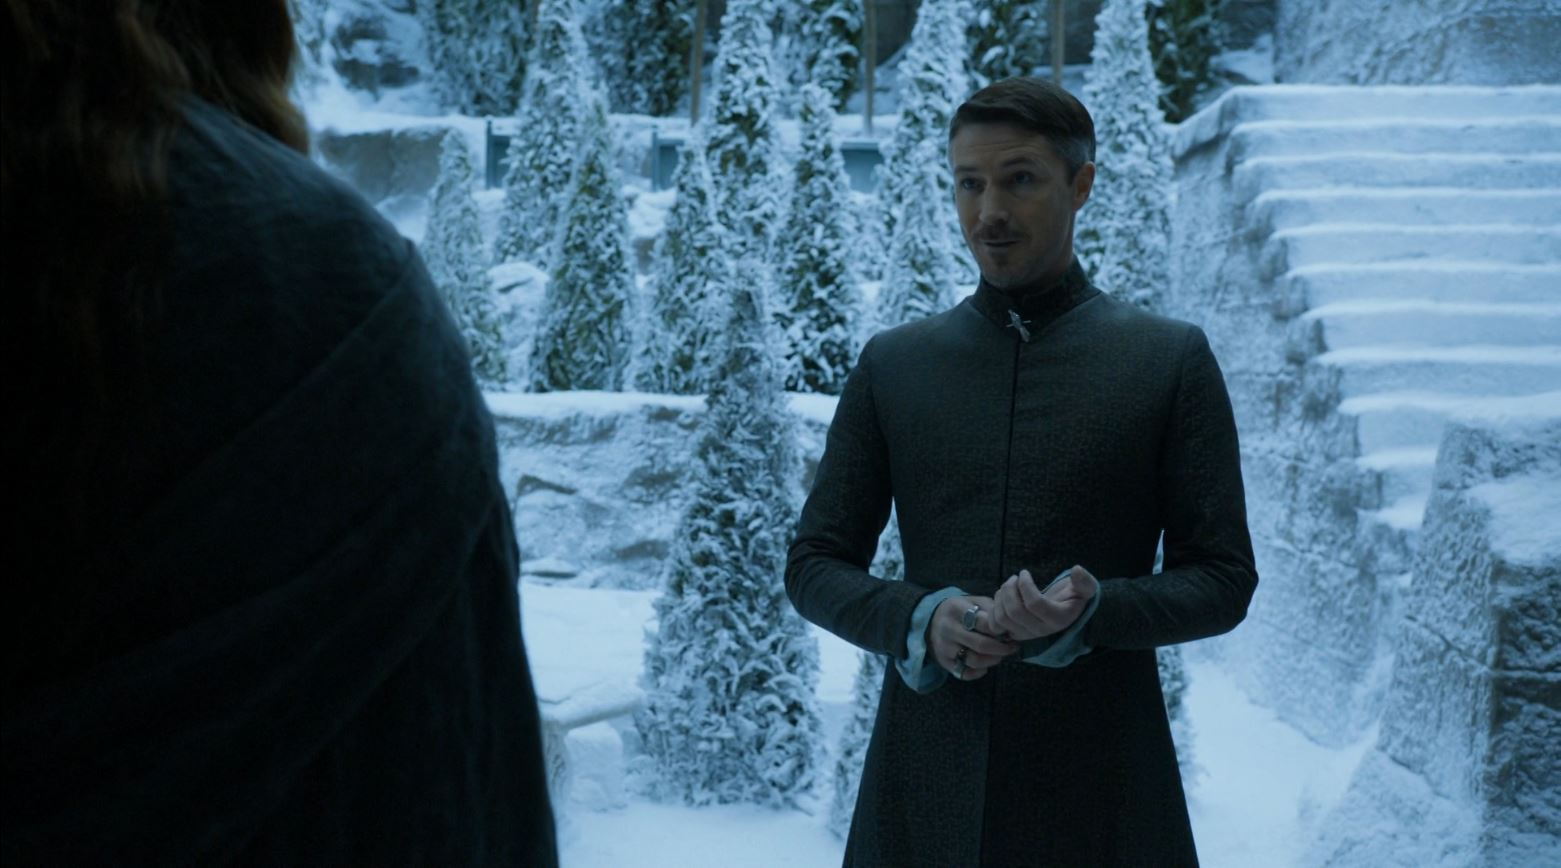 Game Of Thrones S4Ep7 Mockingbird Review - Aidan Gillen as Petry Baelish in The Vale